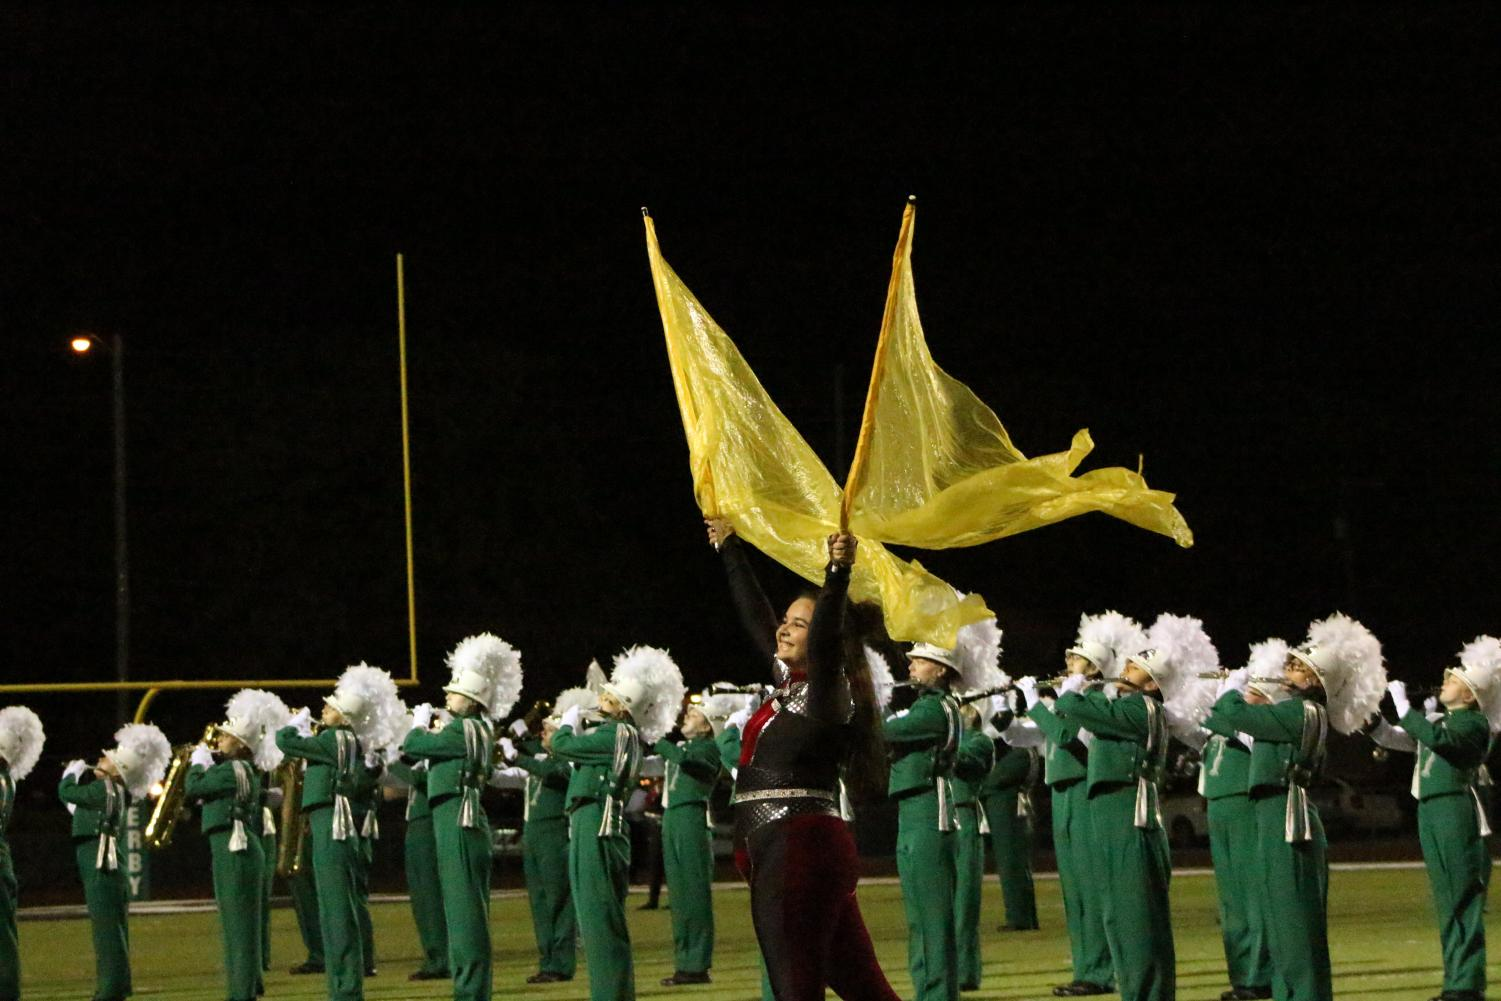 Color+guard+performs+their+show+%22Rebel%22+for+the+first+time.